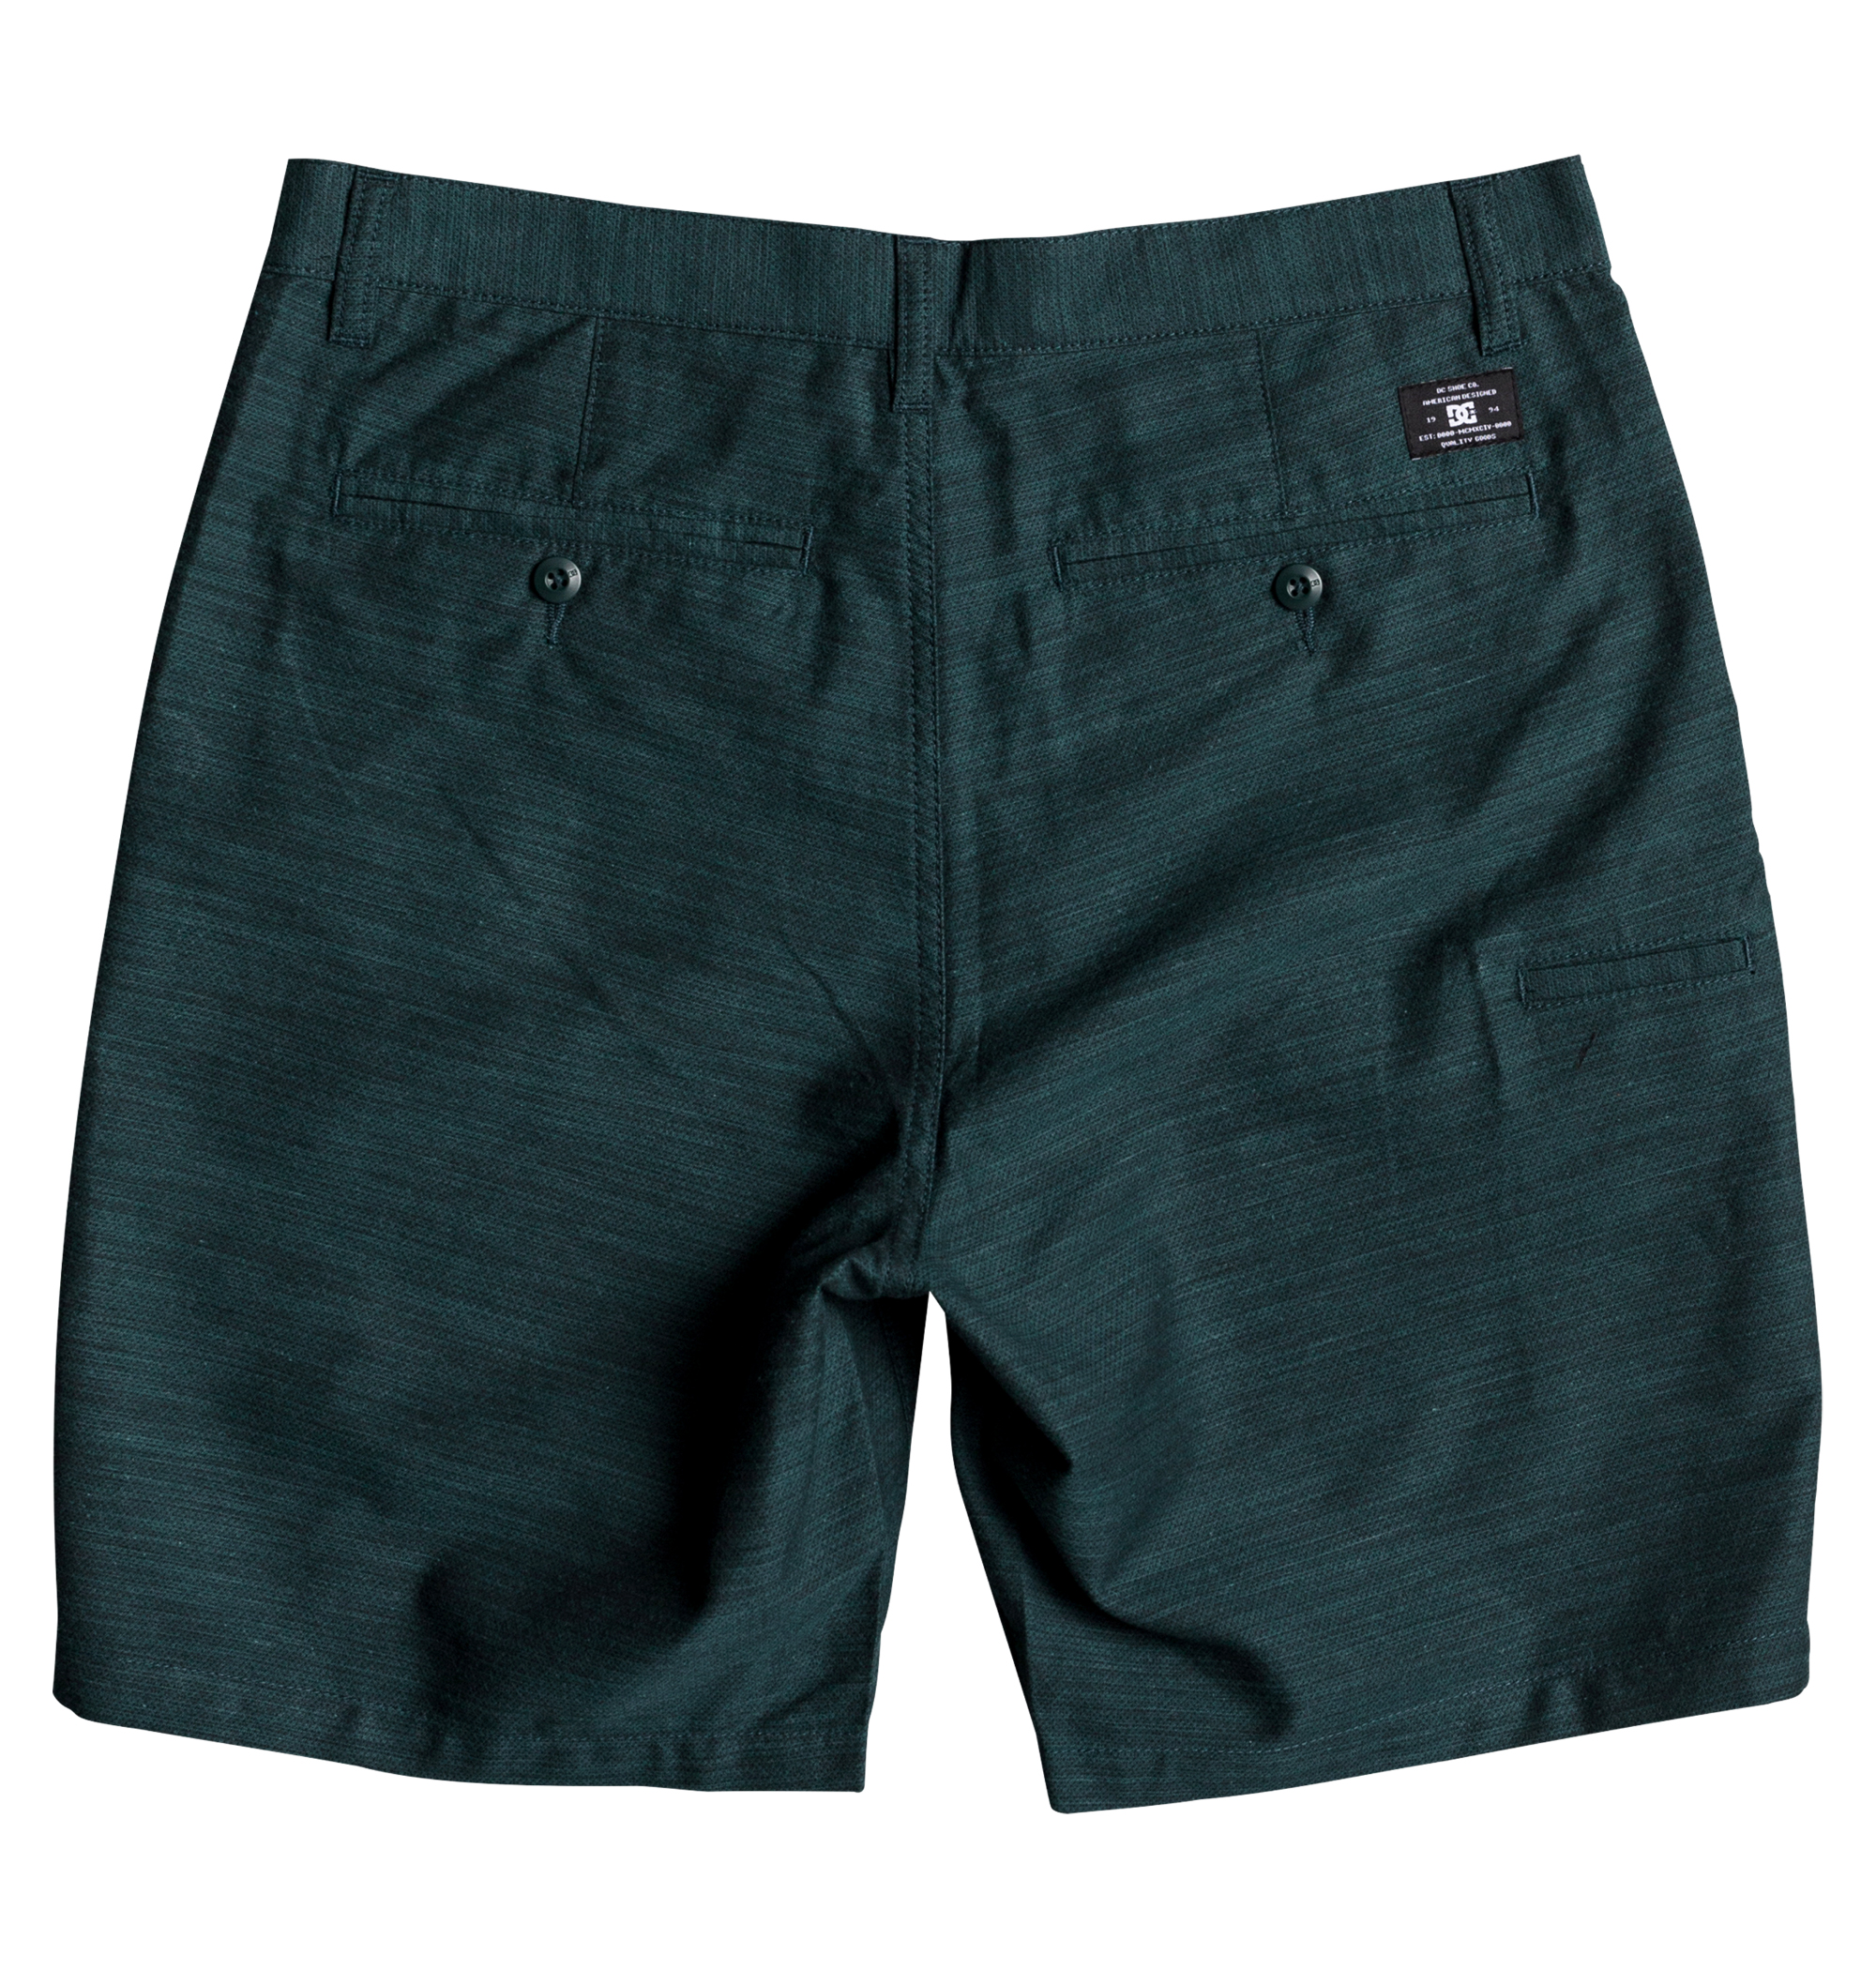 Pantalón Dc Shoes modelo Space Dot en color verde para hombre